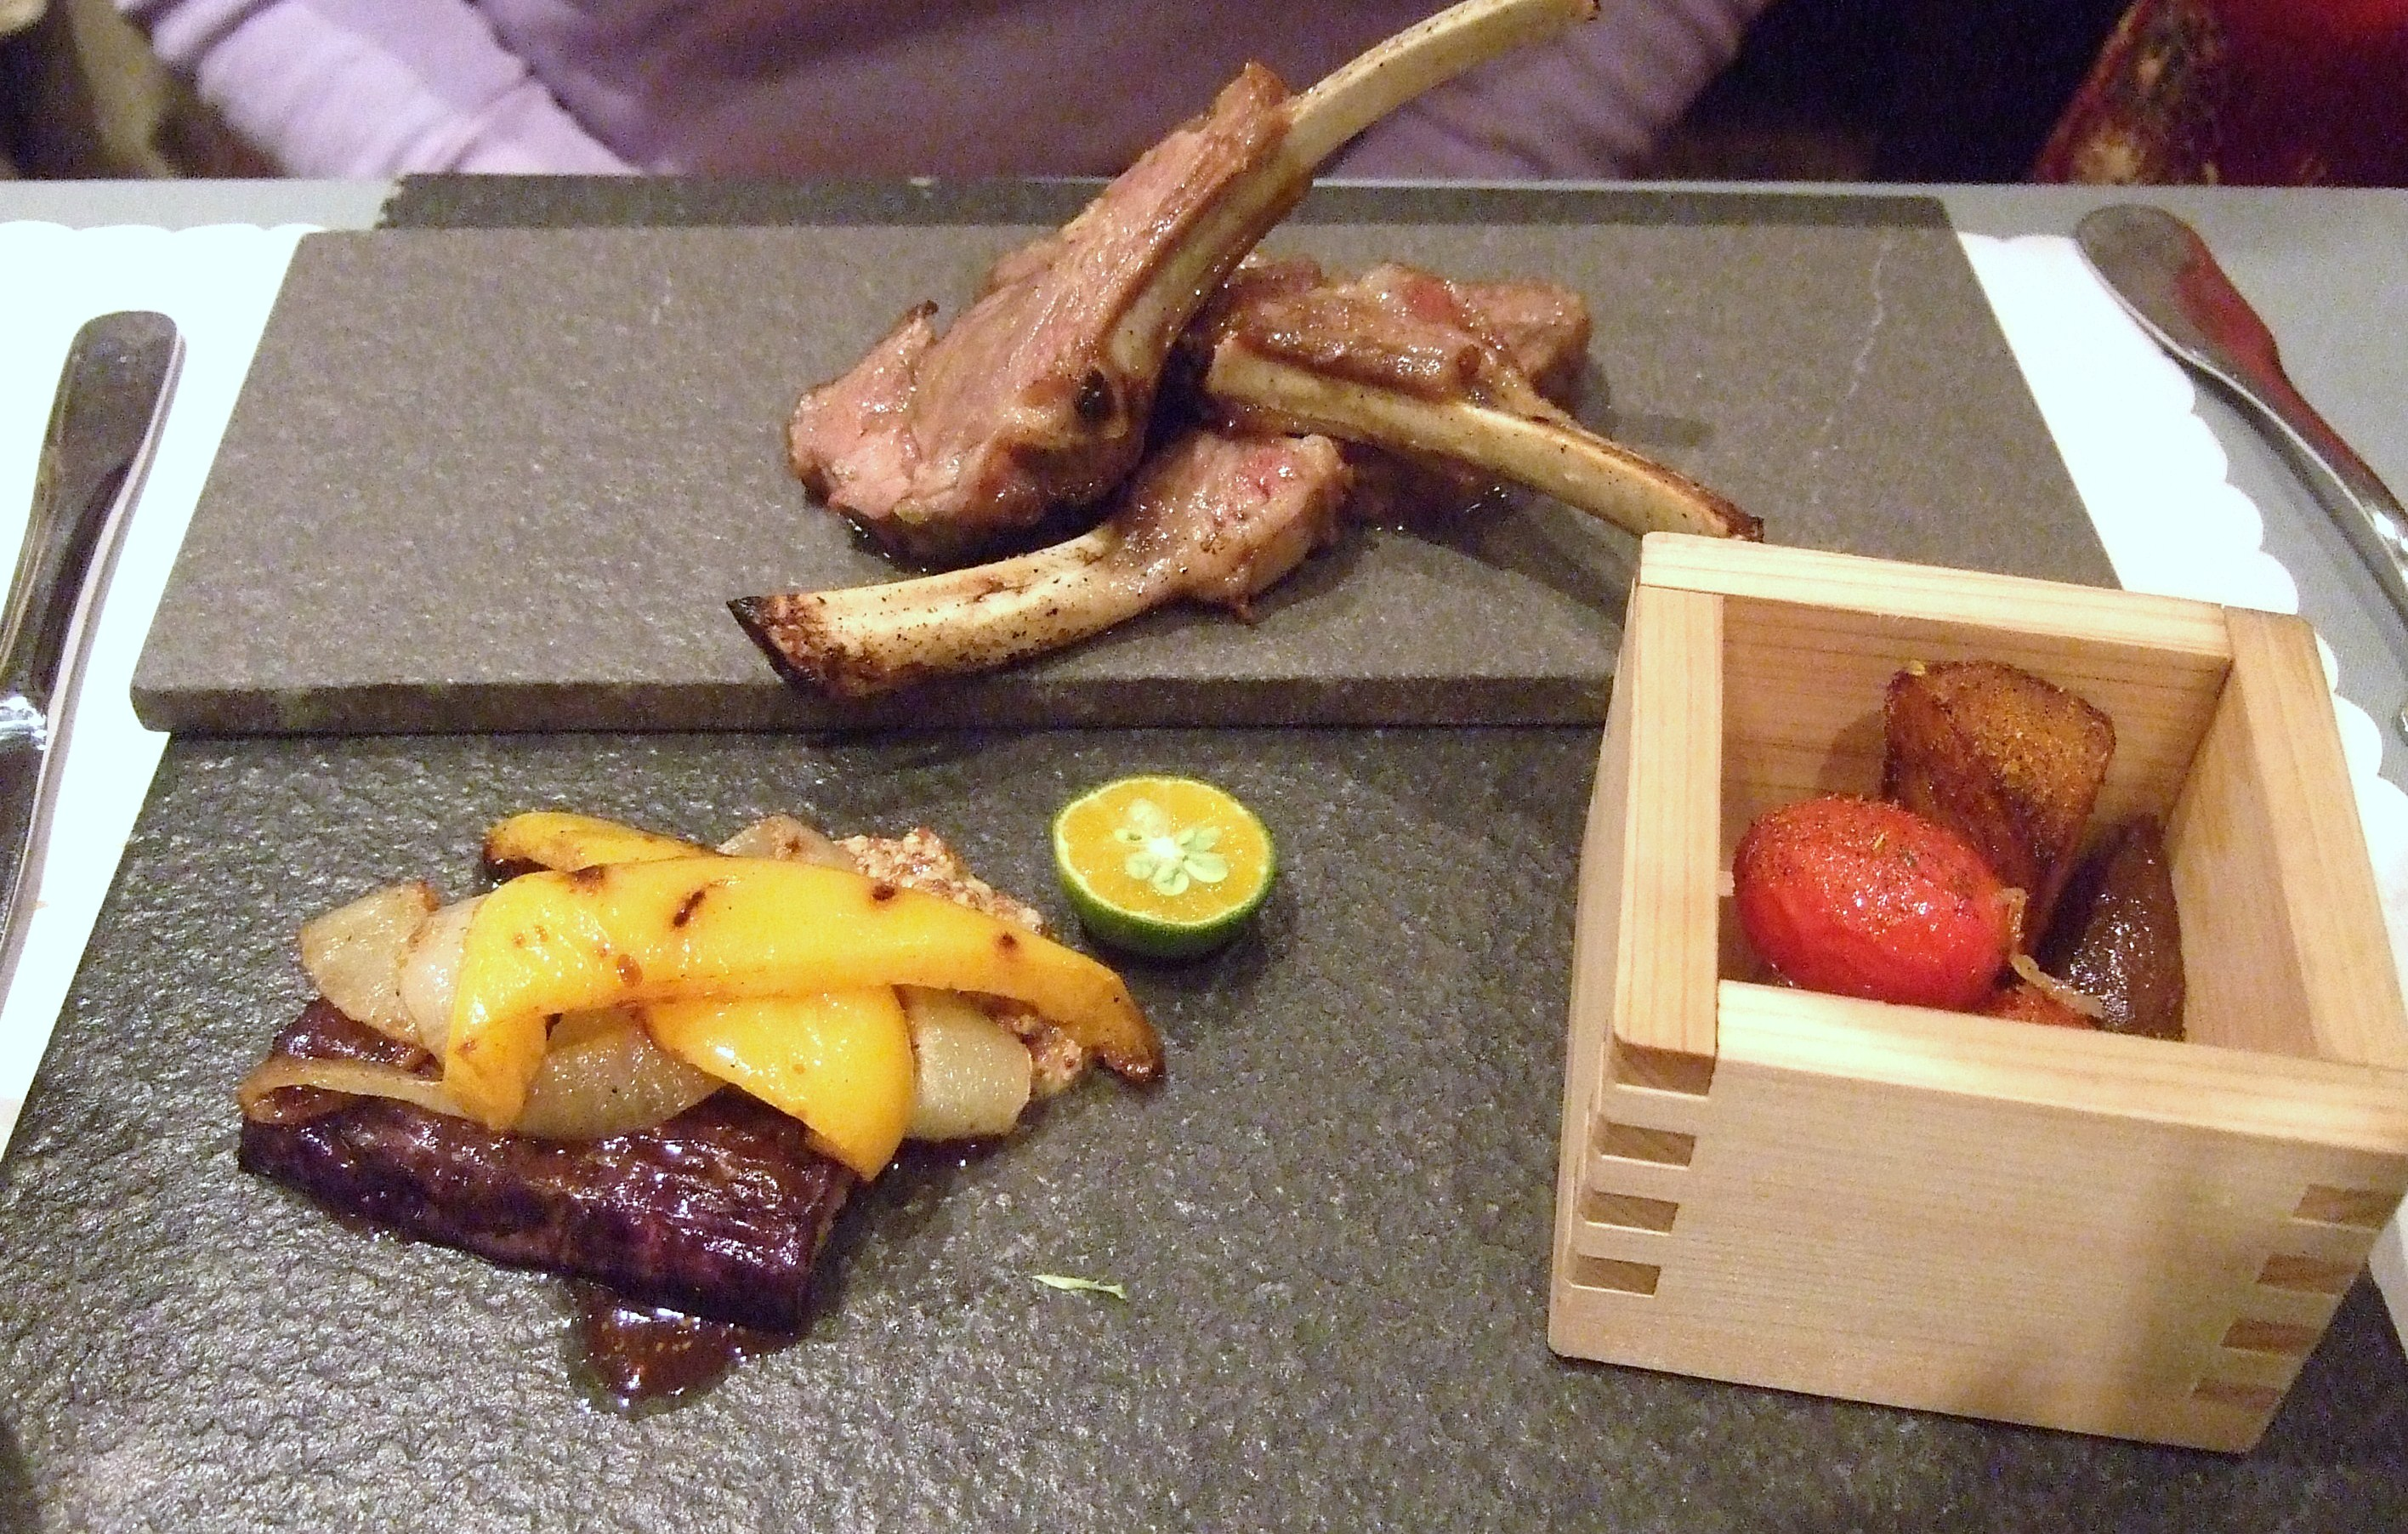 The Grilled Lamp Chop with Yuzu Pepper served with Seasonal Vegetables